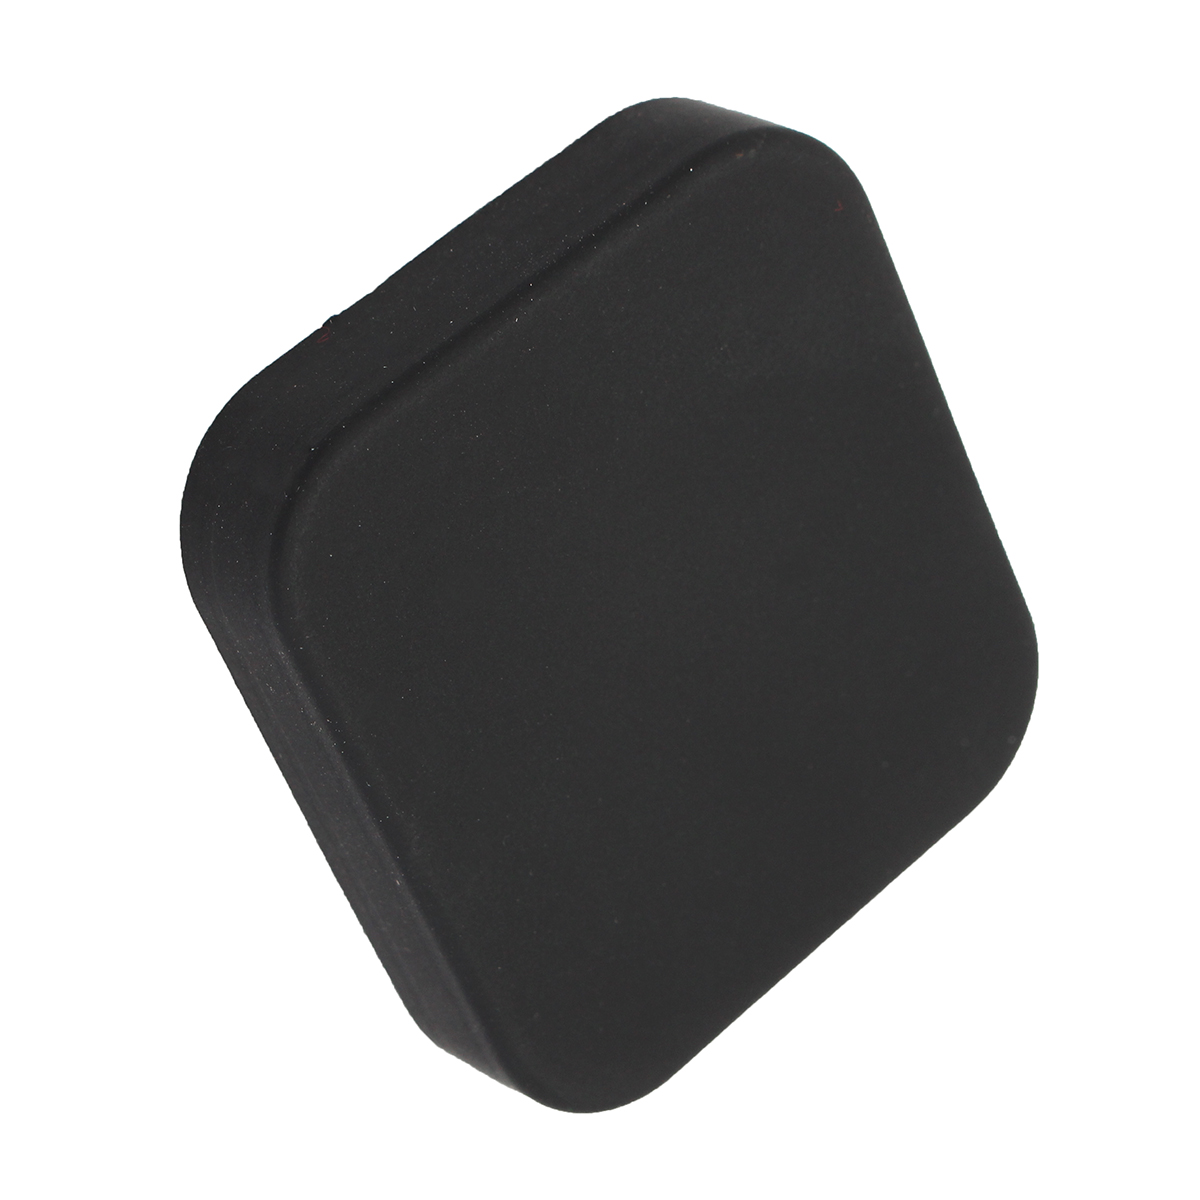 Black Silicone Protective Lens Cap Case Cover Protector For Gopro Hero 5 Camera